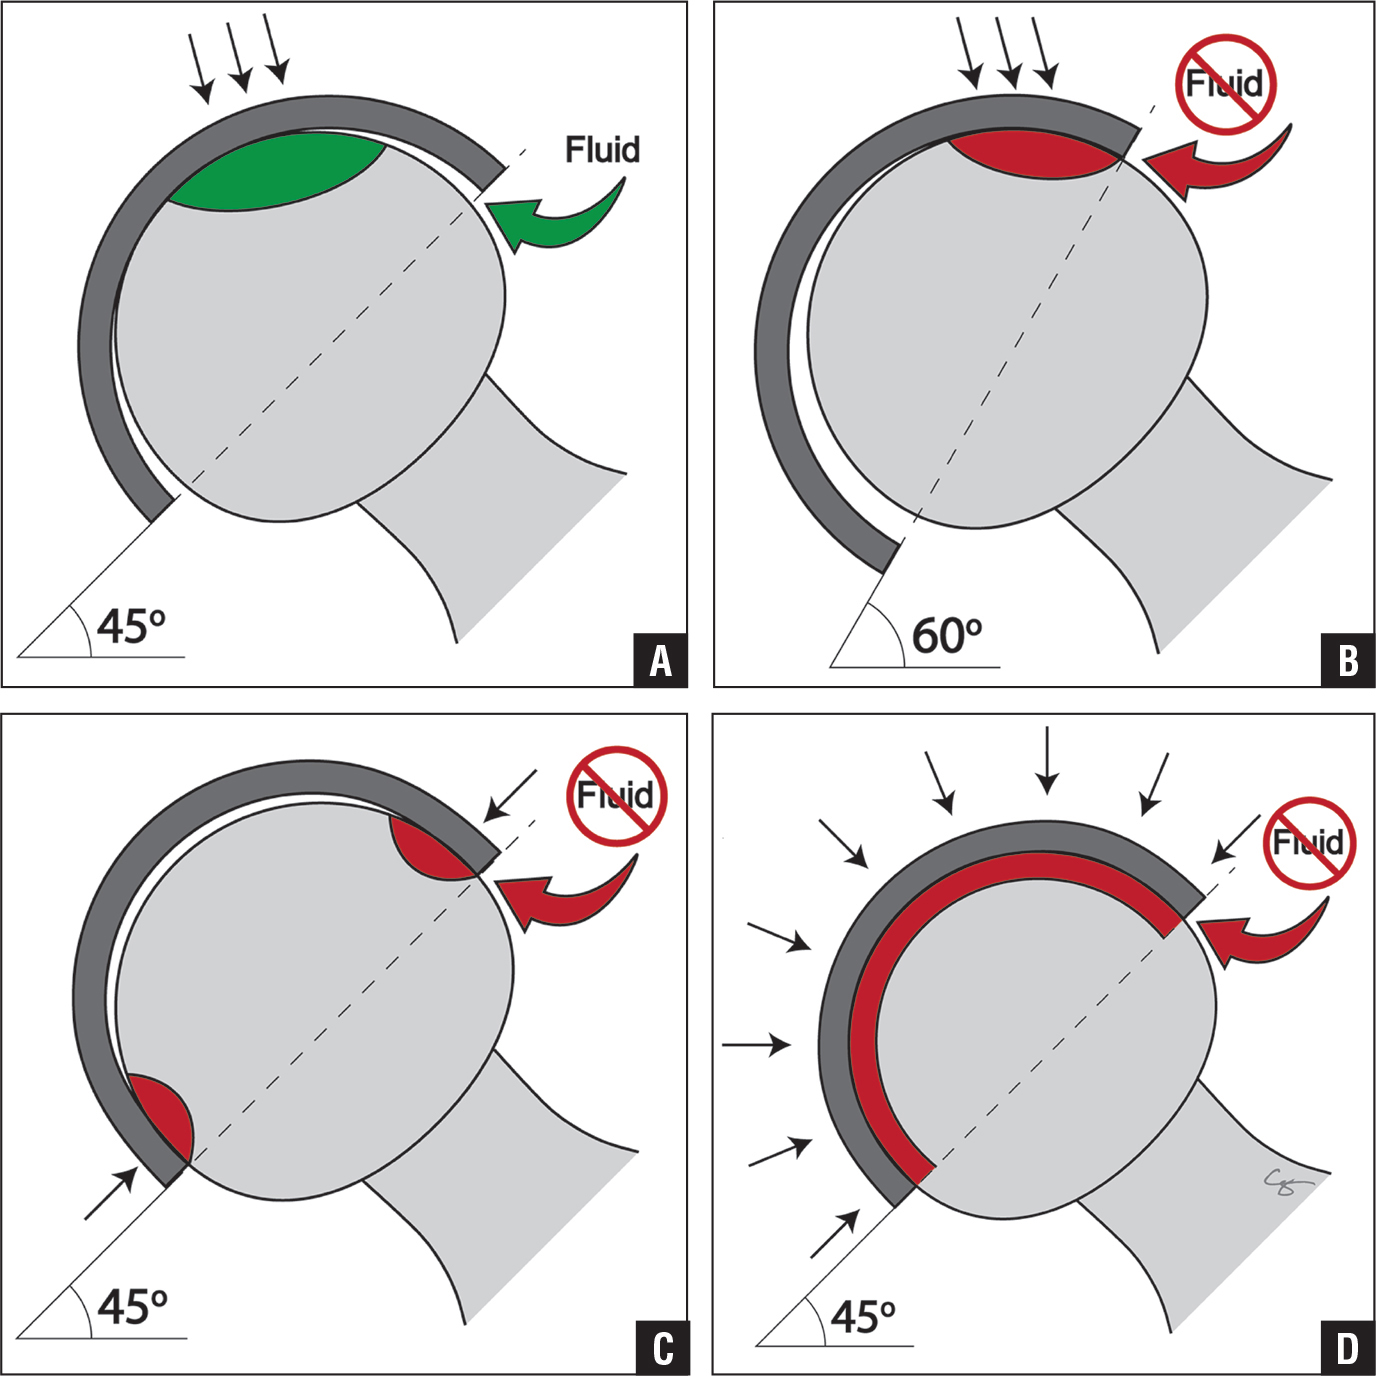 A polar bearing leads to proper bedding-in and low steady-state wear as well as fluid-film lubrication (A). Increasing acetabular component abduction/inclination results in edge loading and prevents fluid-film lubrication, increasing adhesive wear (B). An equatorial bearing is created when a thin-walled monoblock acetabular component is deformed at the rim, resulting in friction, seizing, and increased wear (C). A total contact bearing is created when there is no radial clearance, resulting in friction, seizing, and increased wear (D). Black arrows indicate the area of contact between the metal head and the acetabular component. Green and red arrows indicate the clearance available for fluid ingress and egress to establish fluid-film lubrication.